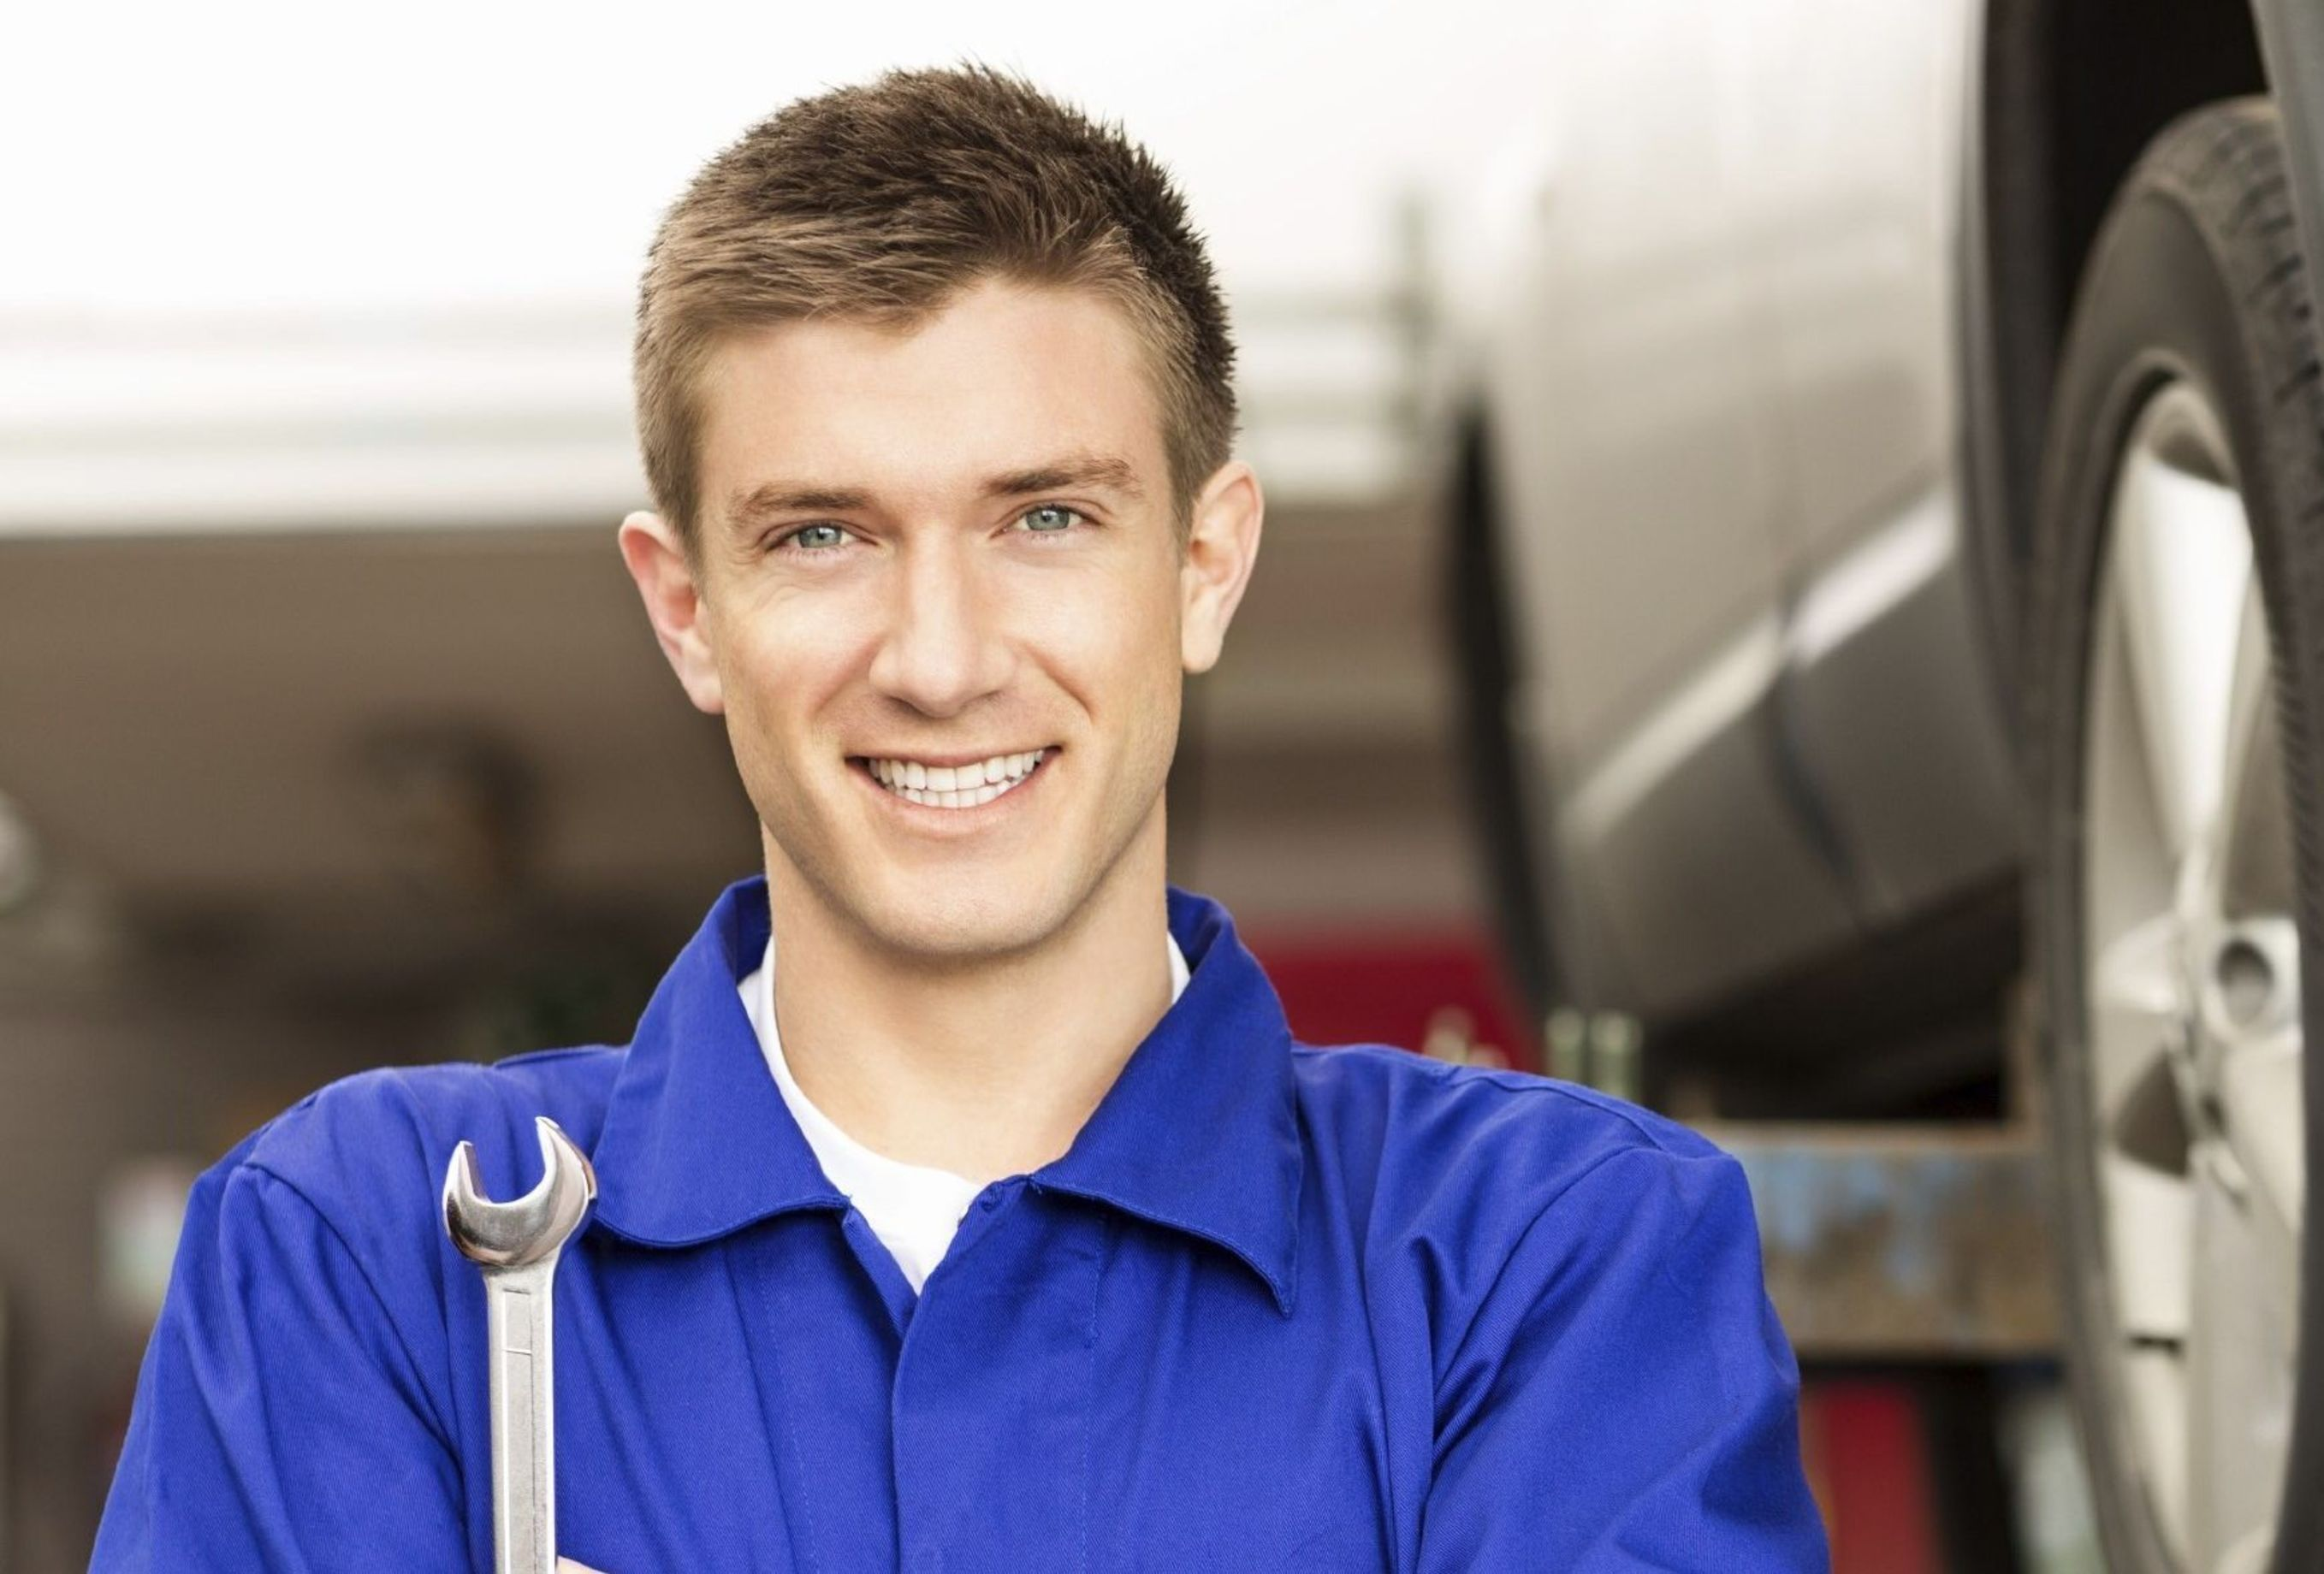 Visit the Dealership for an Oil Change Today!